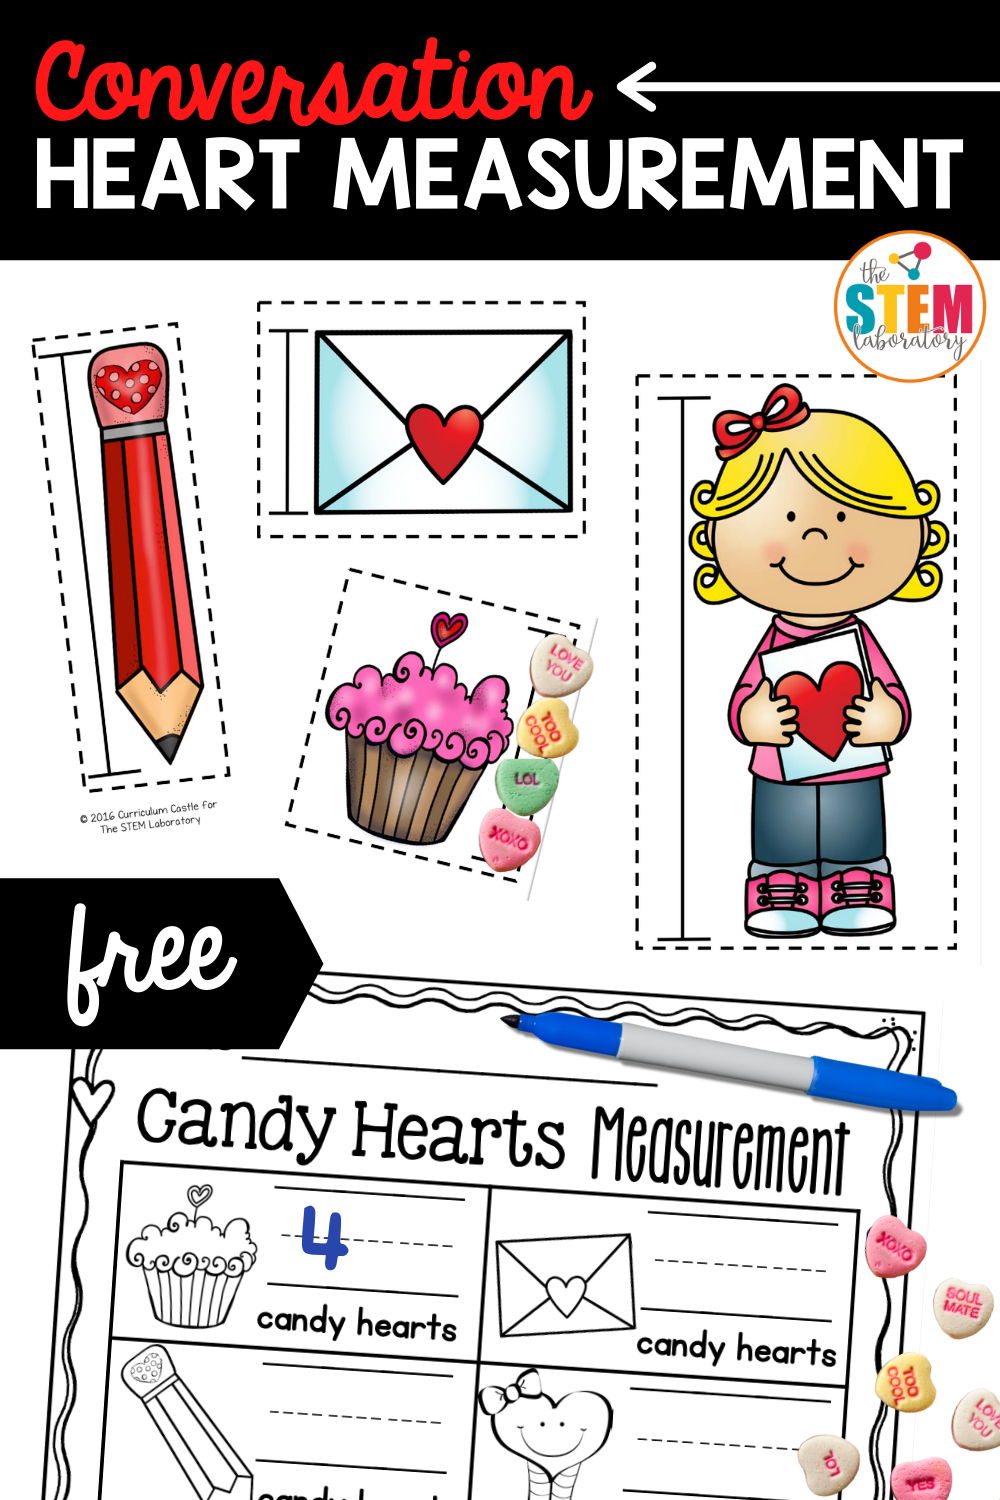 Conversation Heart Measurement Activity